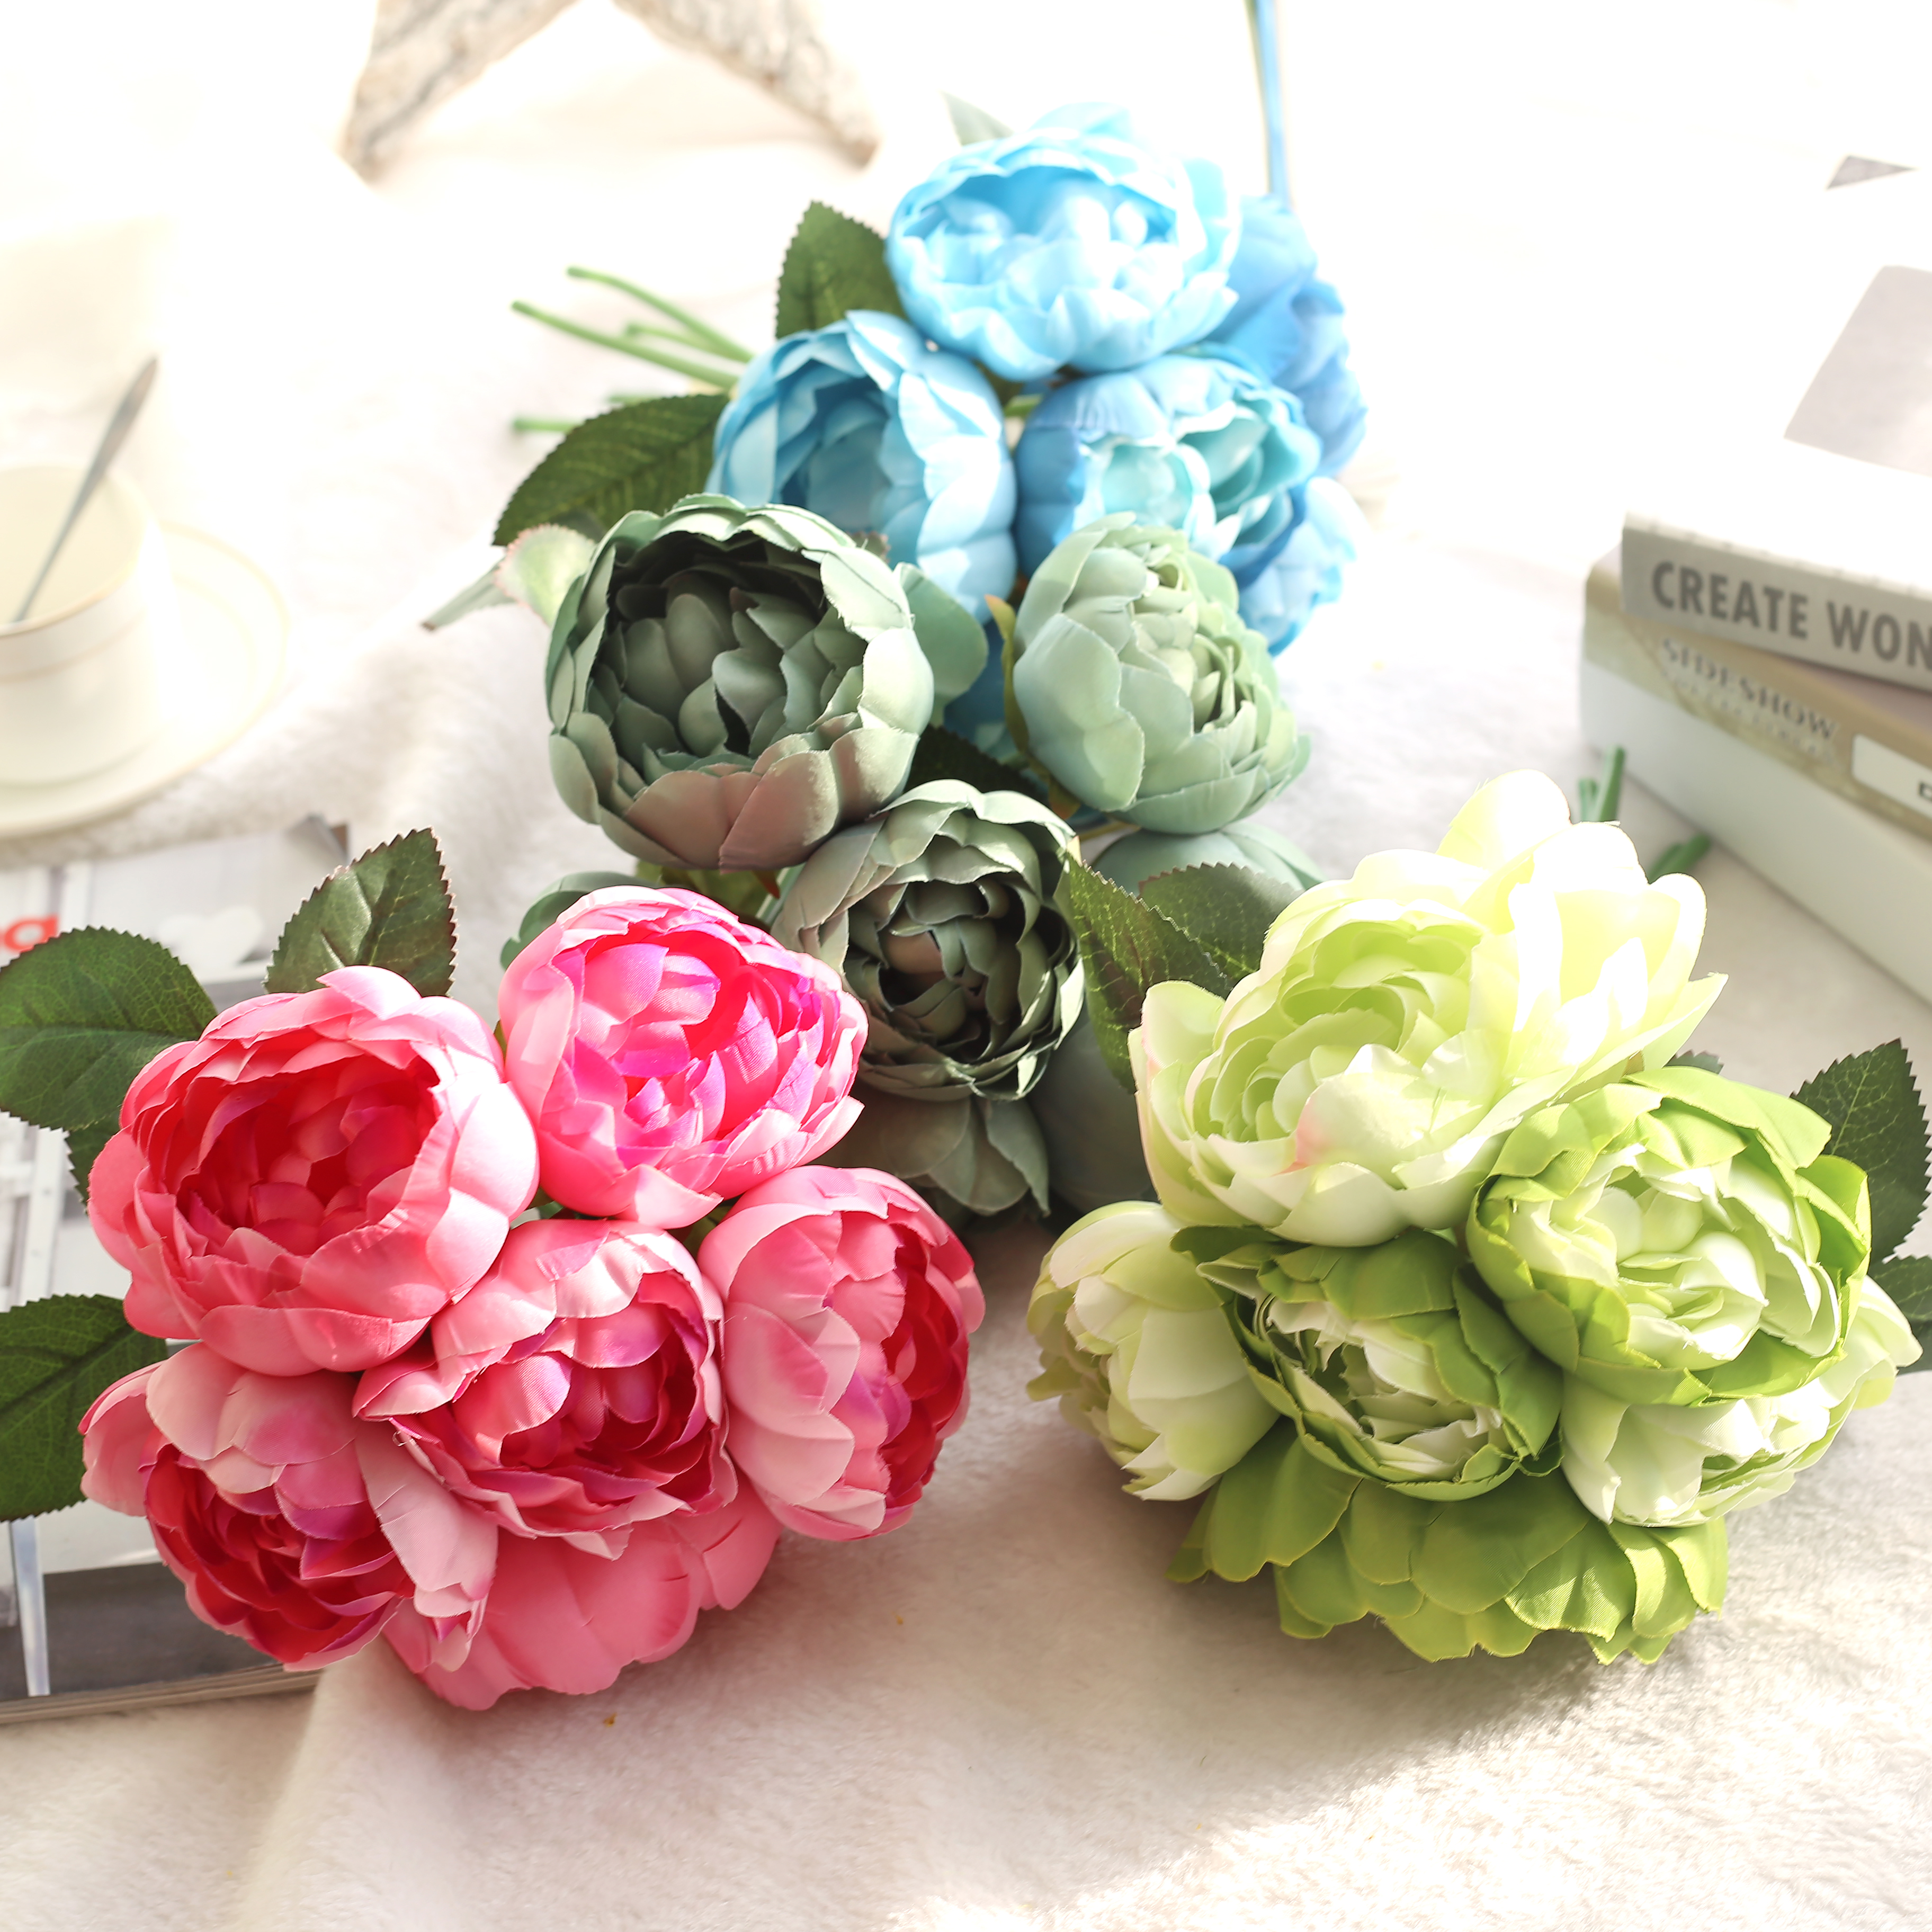 6 headbouquet damascus round flower artificial rose flowers wedding 6 headbouquet damascus round flower artificial rose flowers wedding party decoration silk flowers home festival decor p15 in artificial dried flowers izmirmasajfo